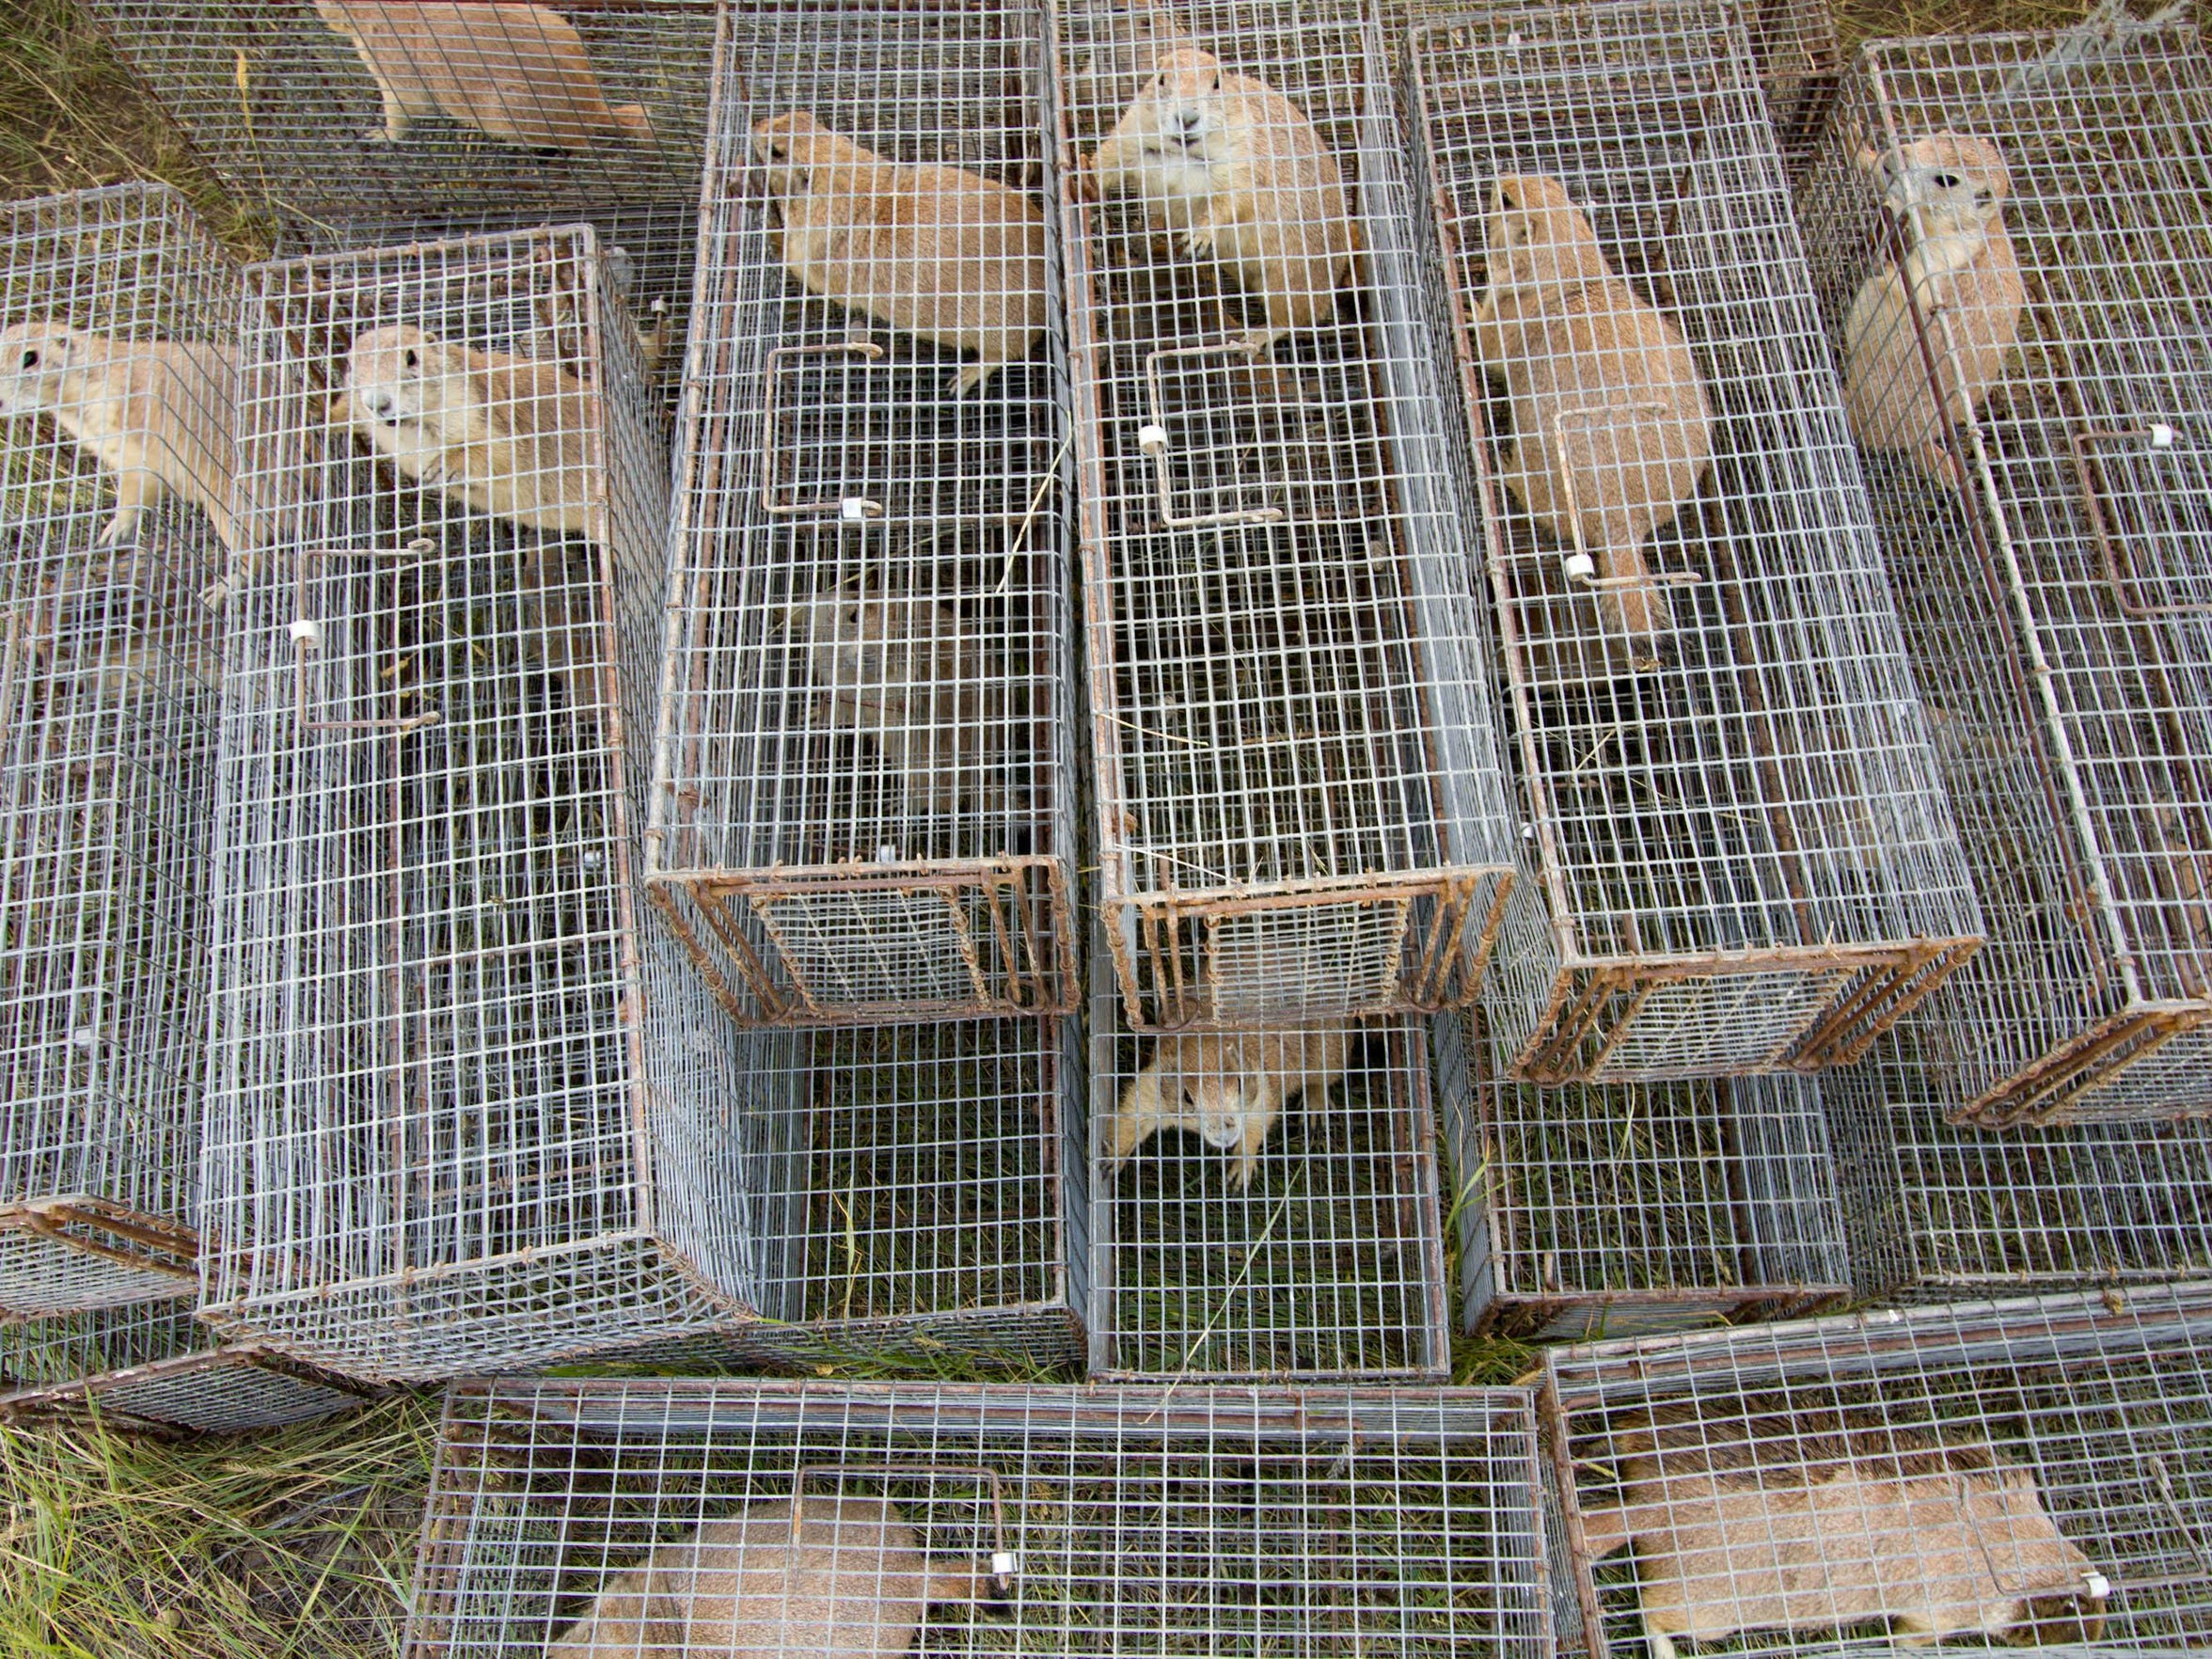 Trapped prairie dogs await processing.